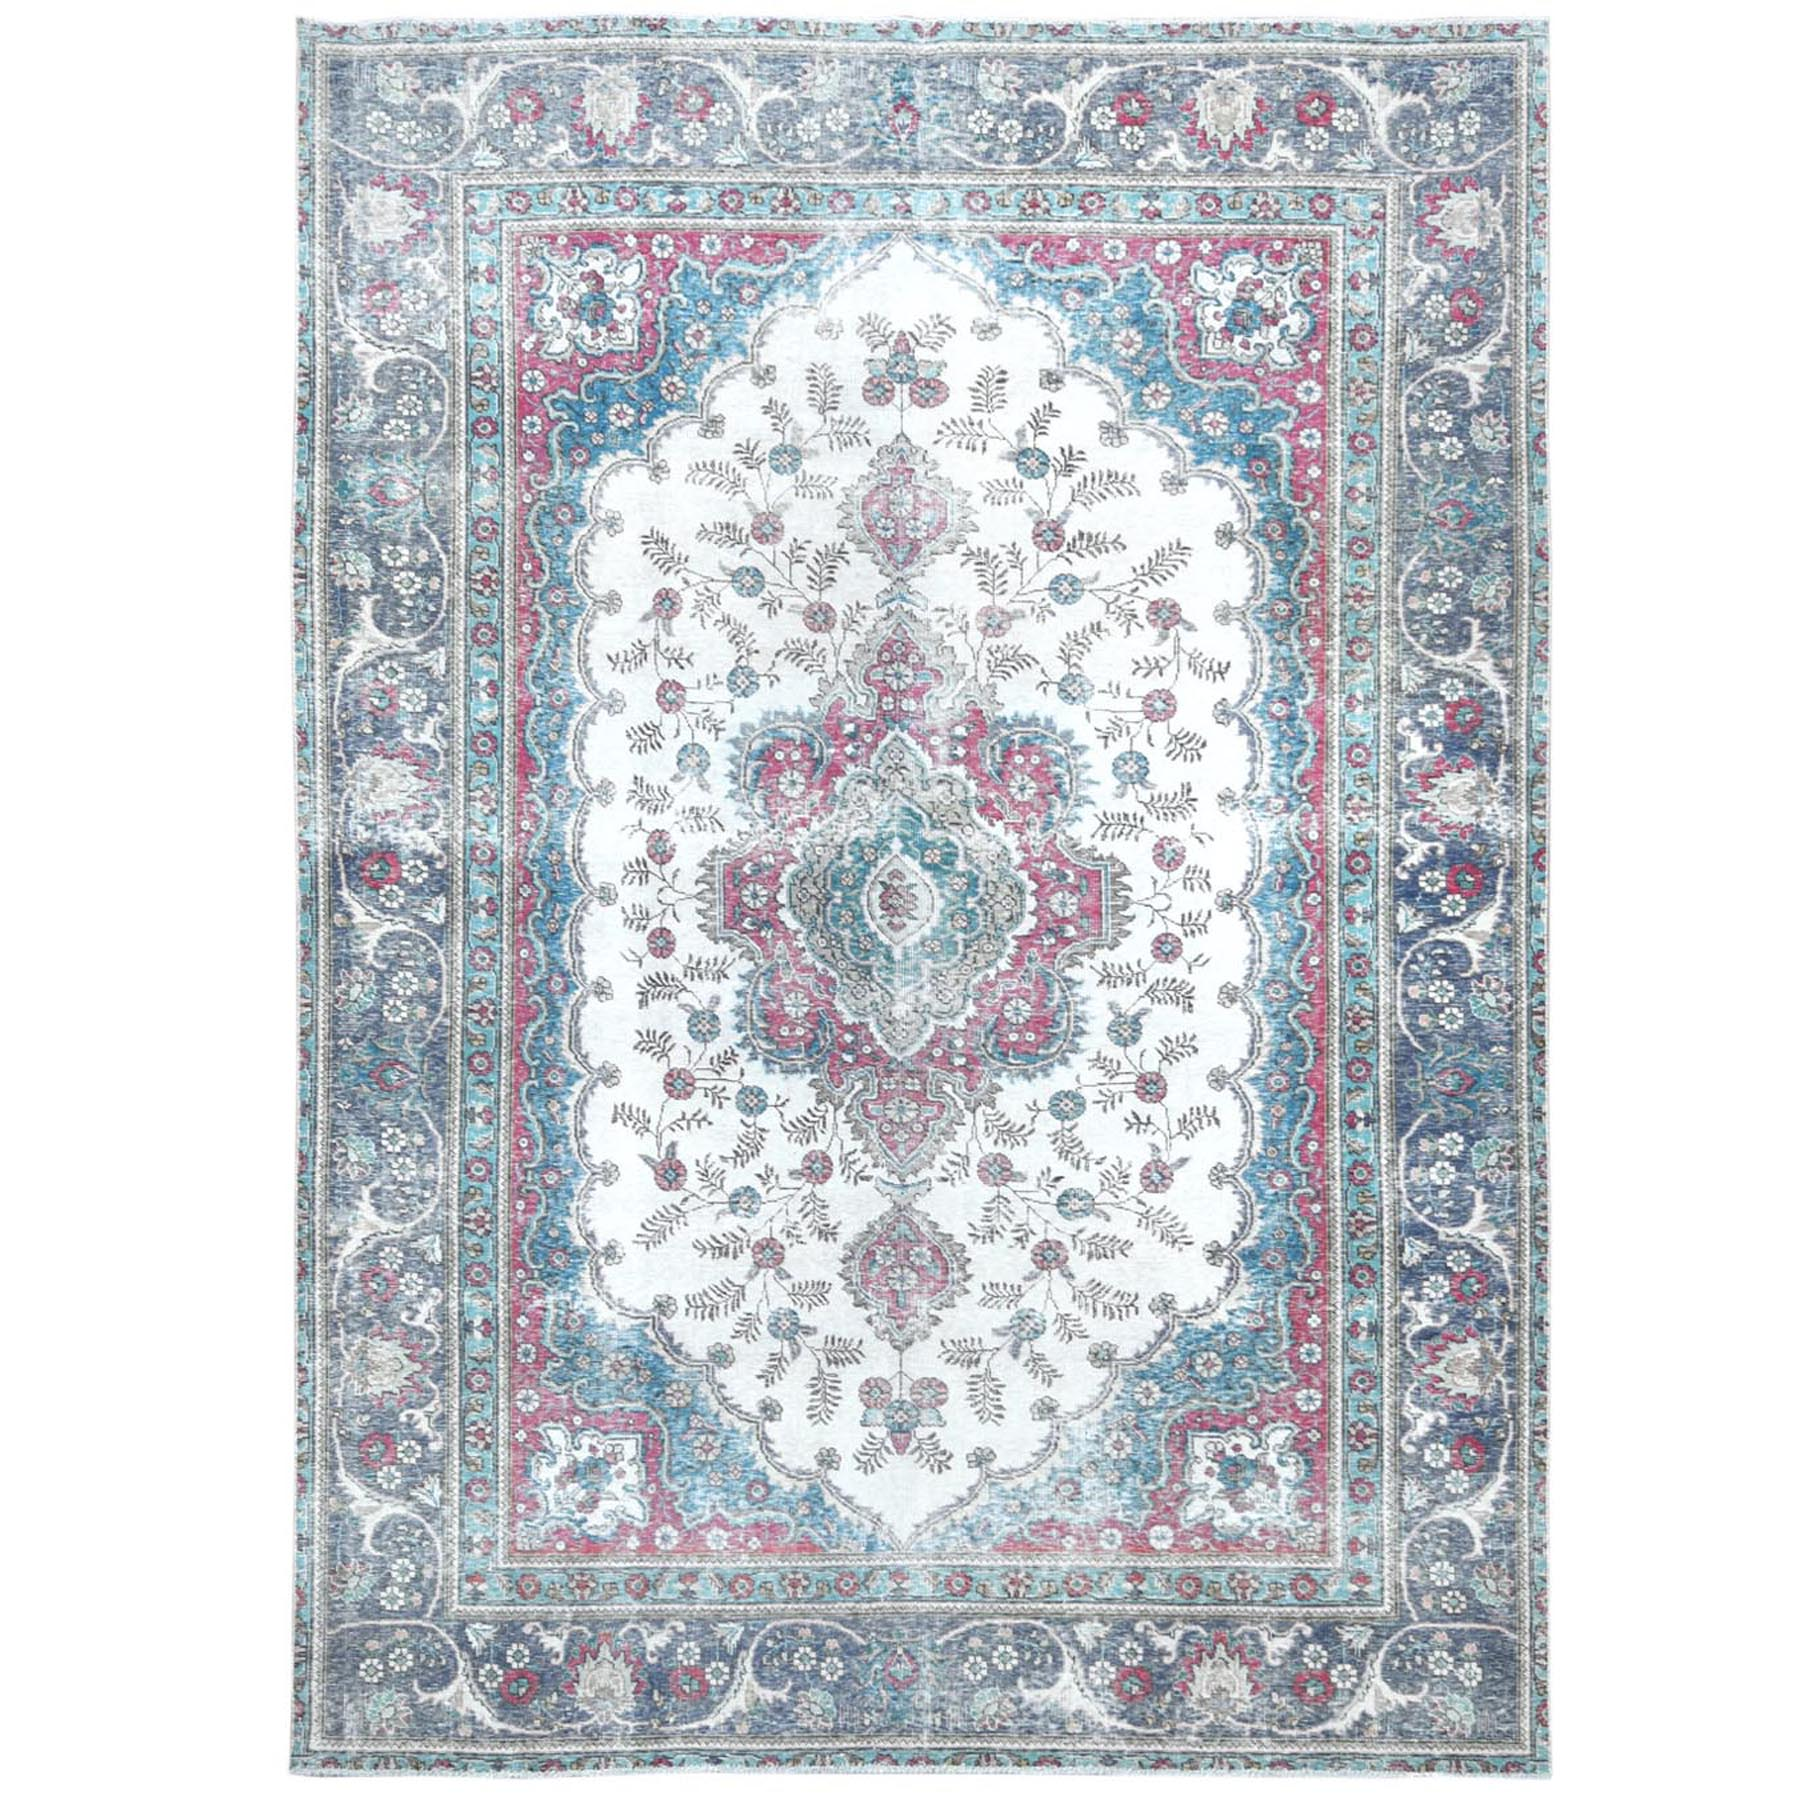 """7'10""""x11' Vintage Ivory With Fresh Colors Persian Tabriz Worn Down Clean Hand Knotted Pure Wool Oriental Rug"""